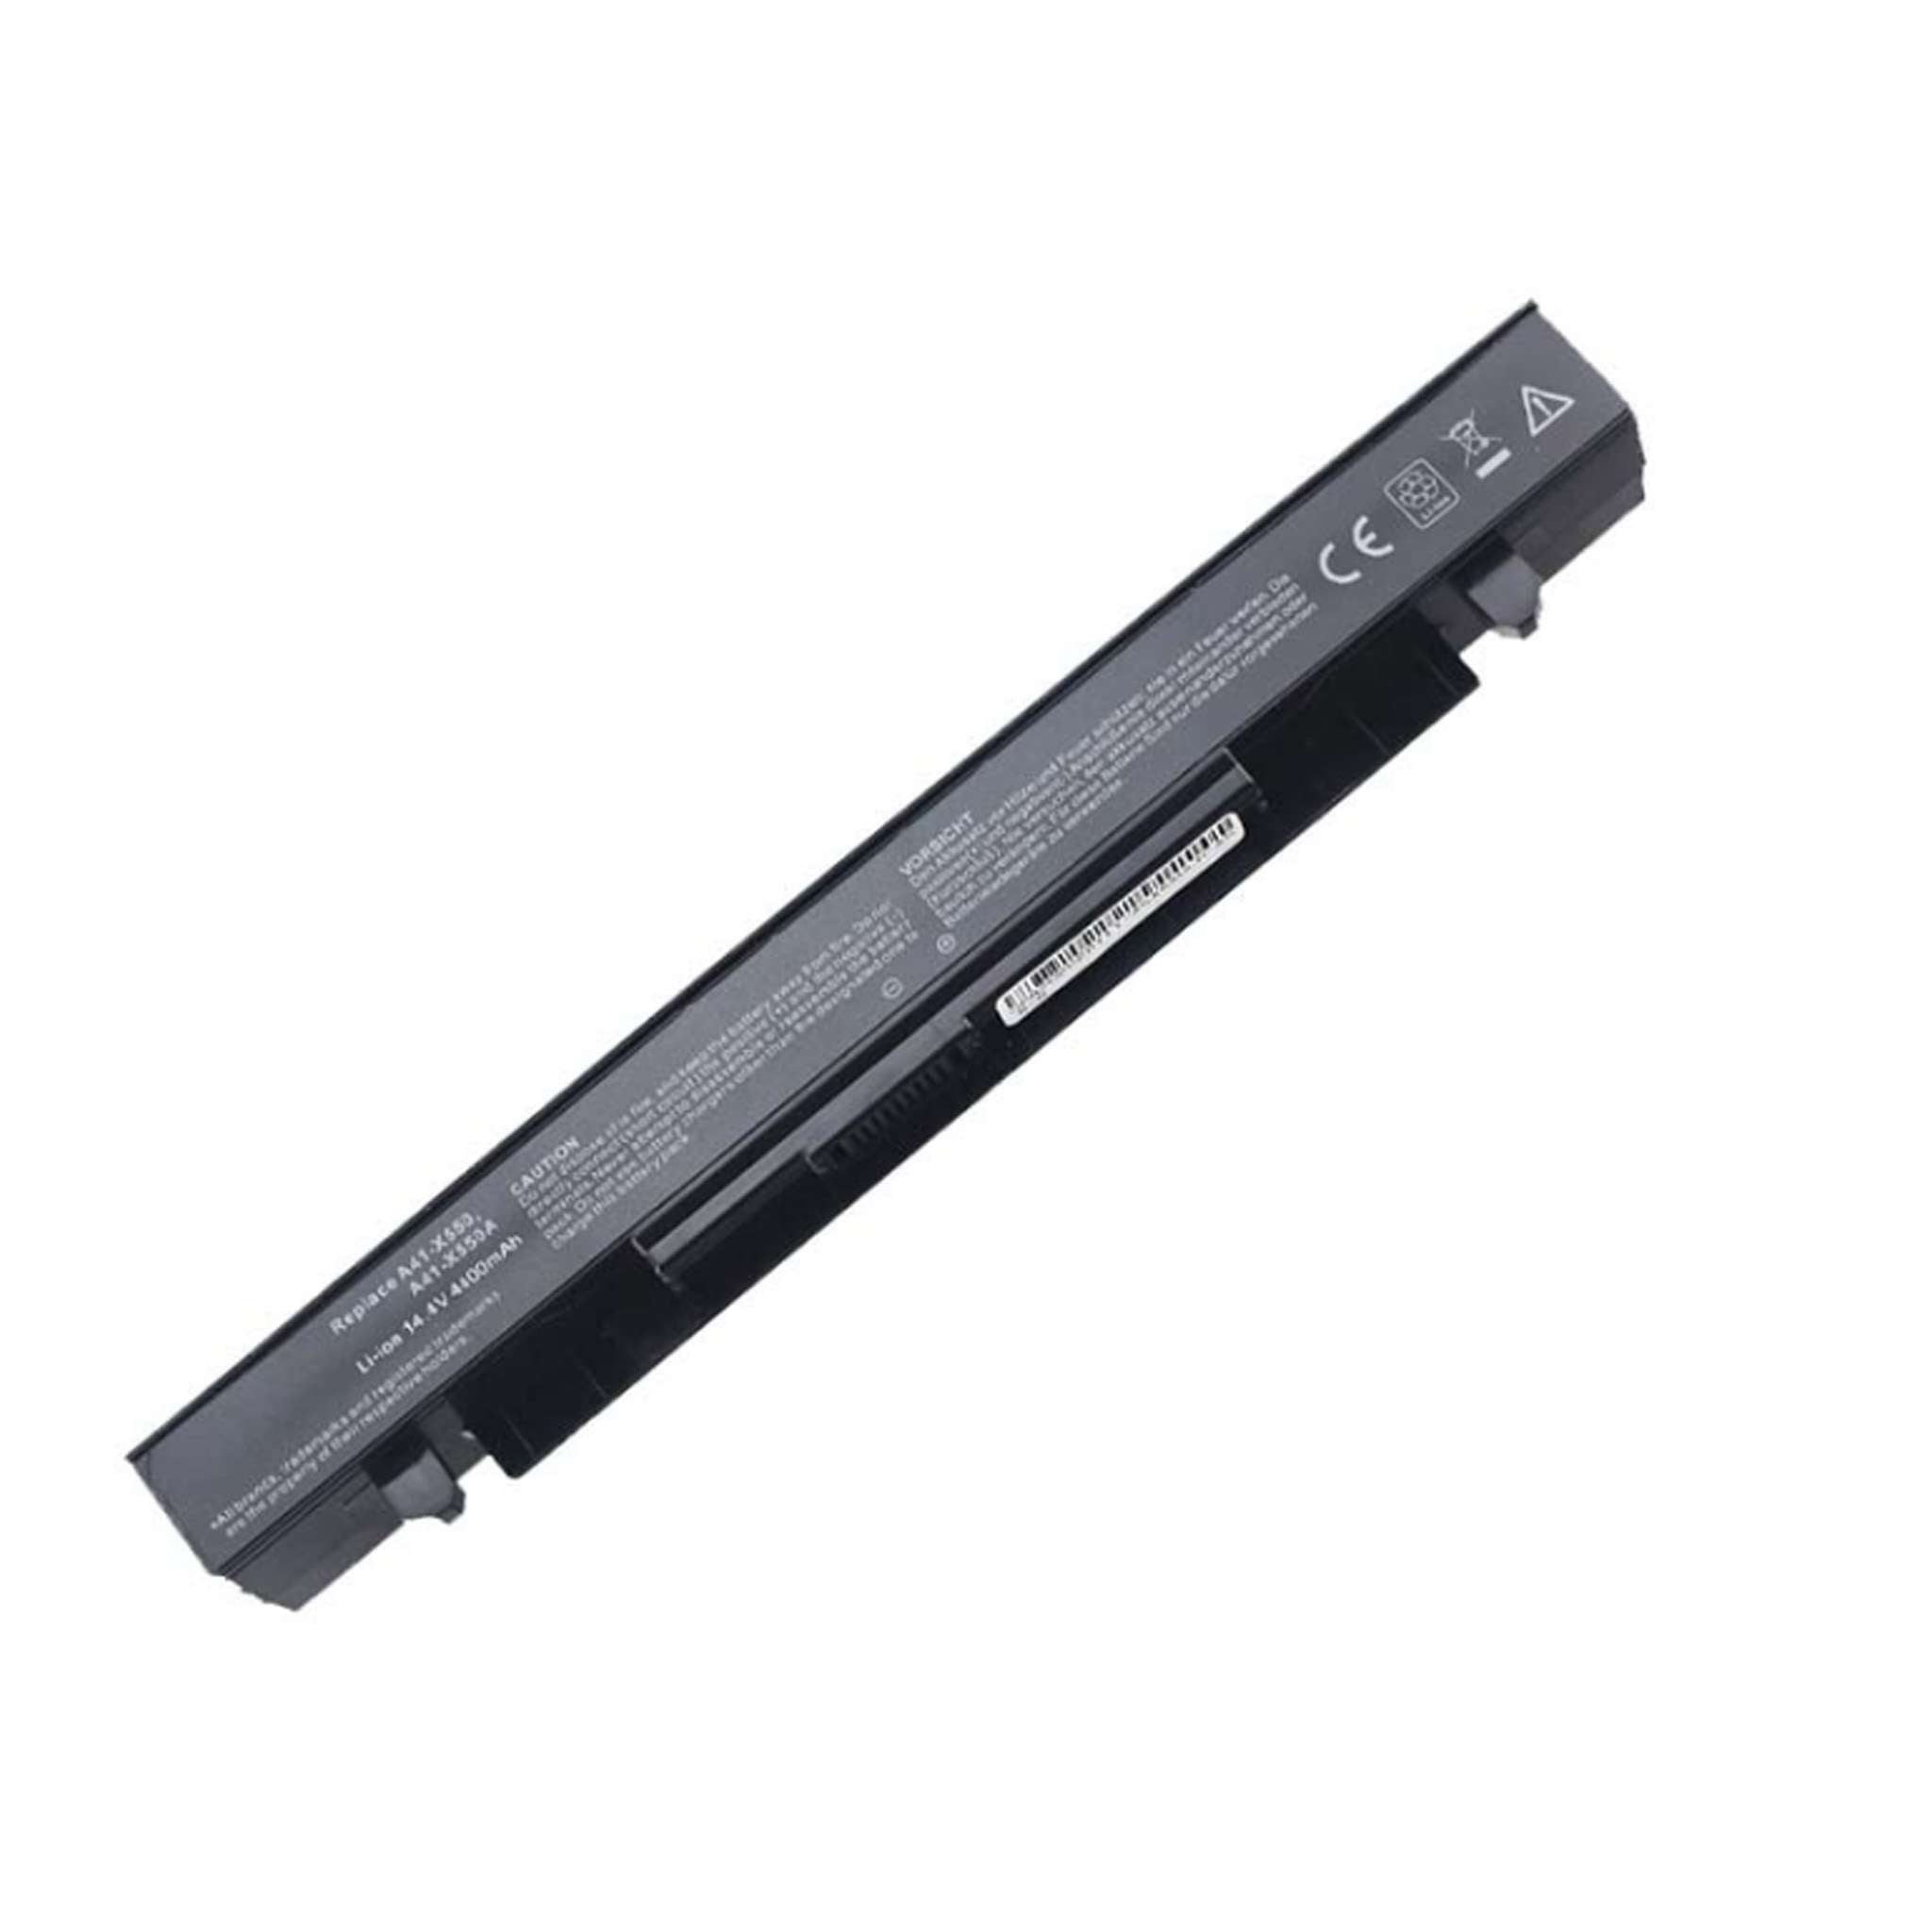 Asus A41-X550A Battery for X450 R510